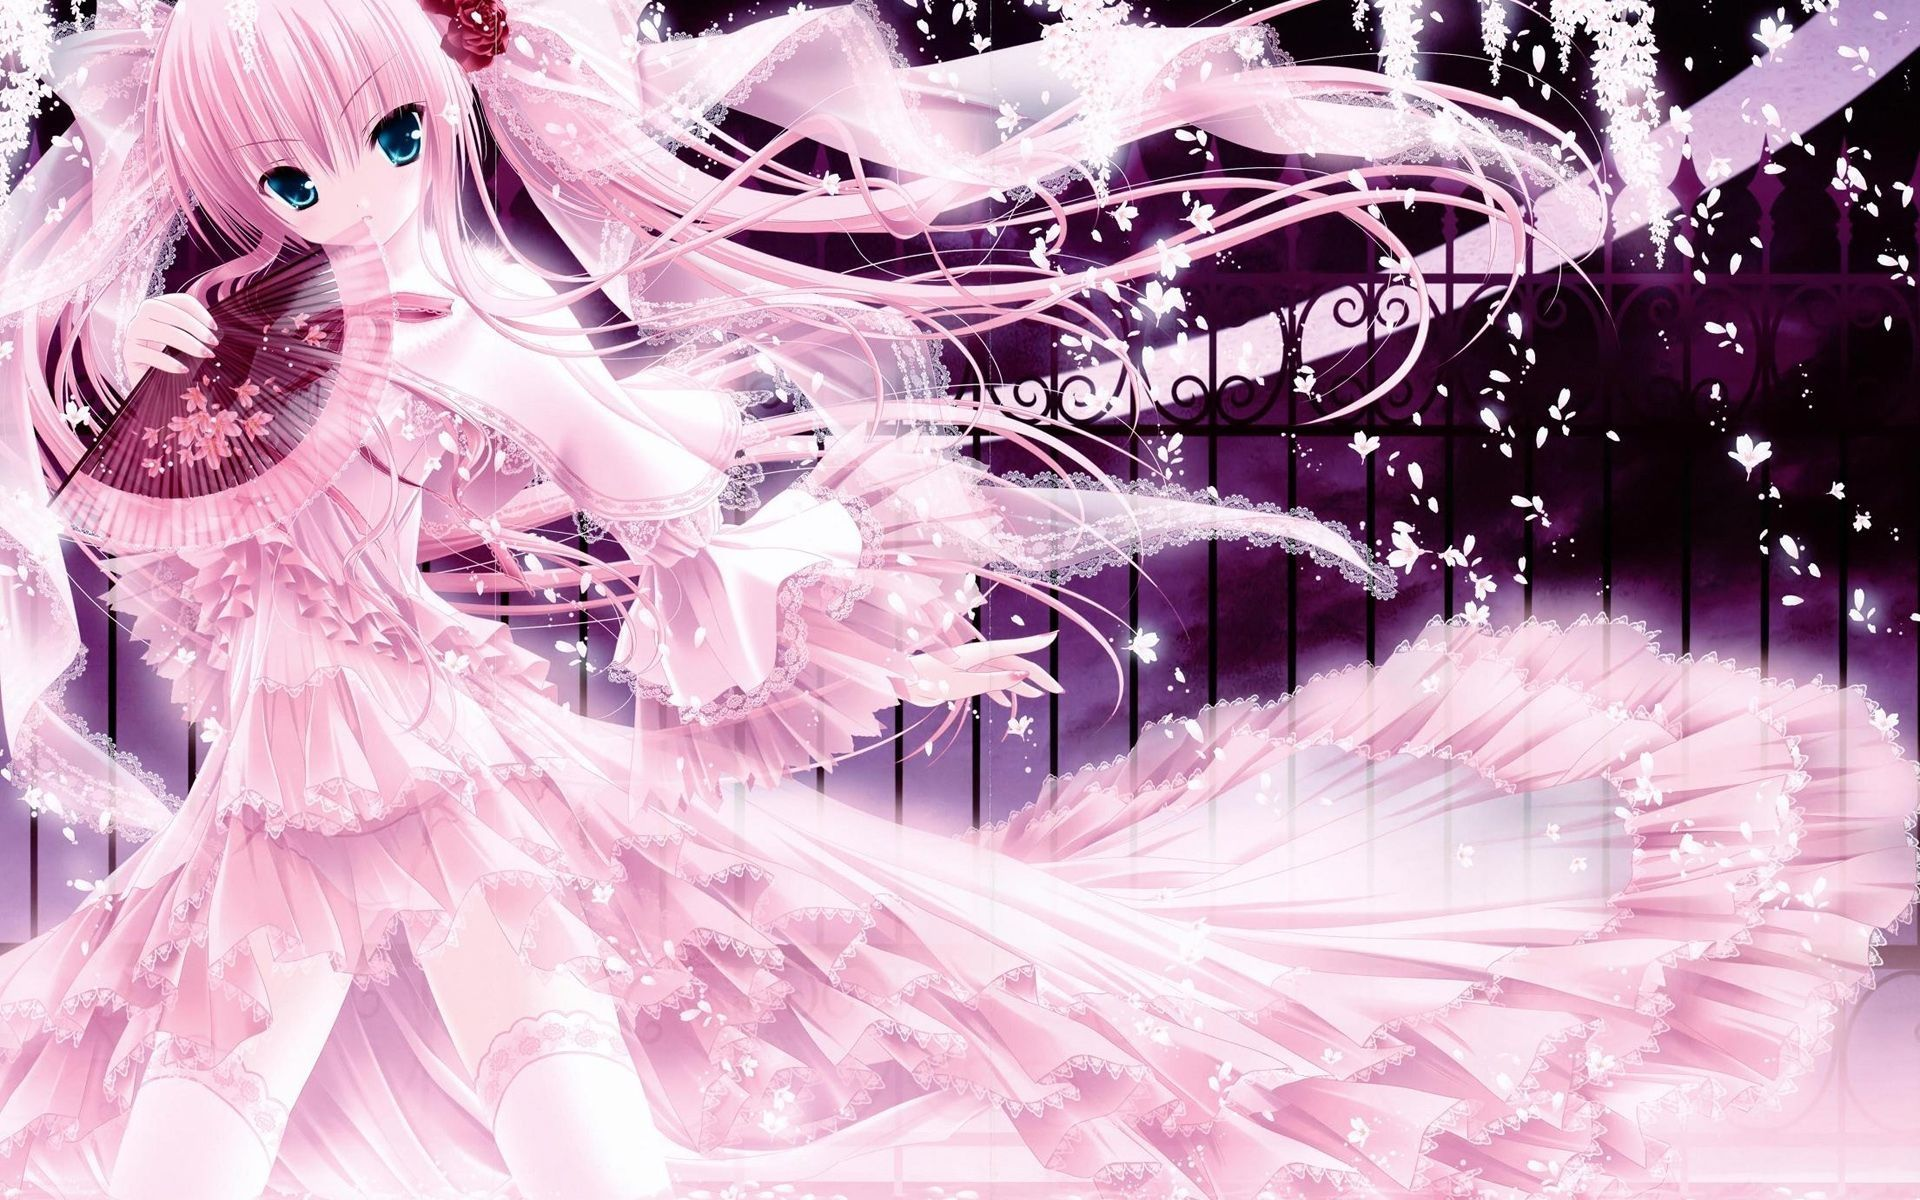 Pink Anime Wallpapers - Top Free Pink Anime Backgrounds ...